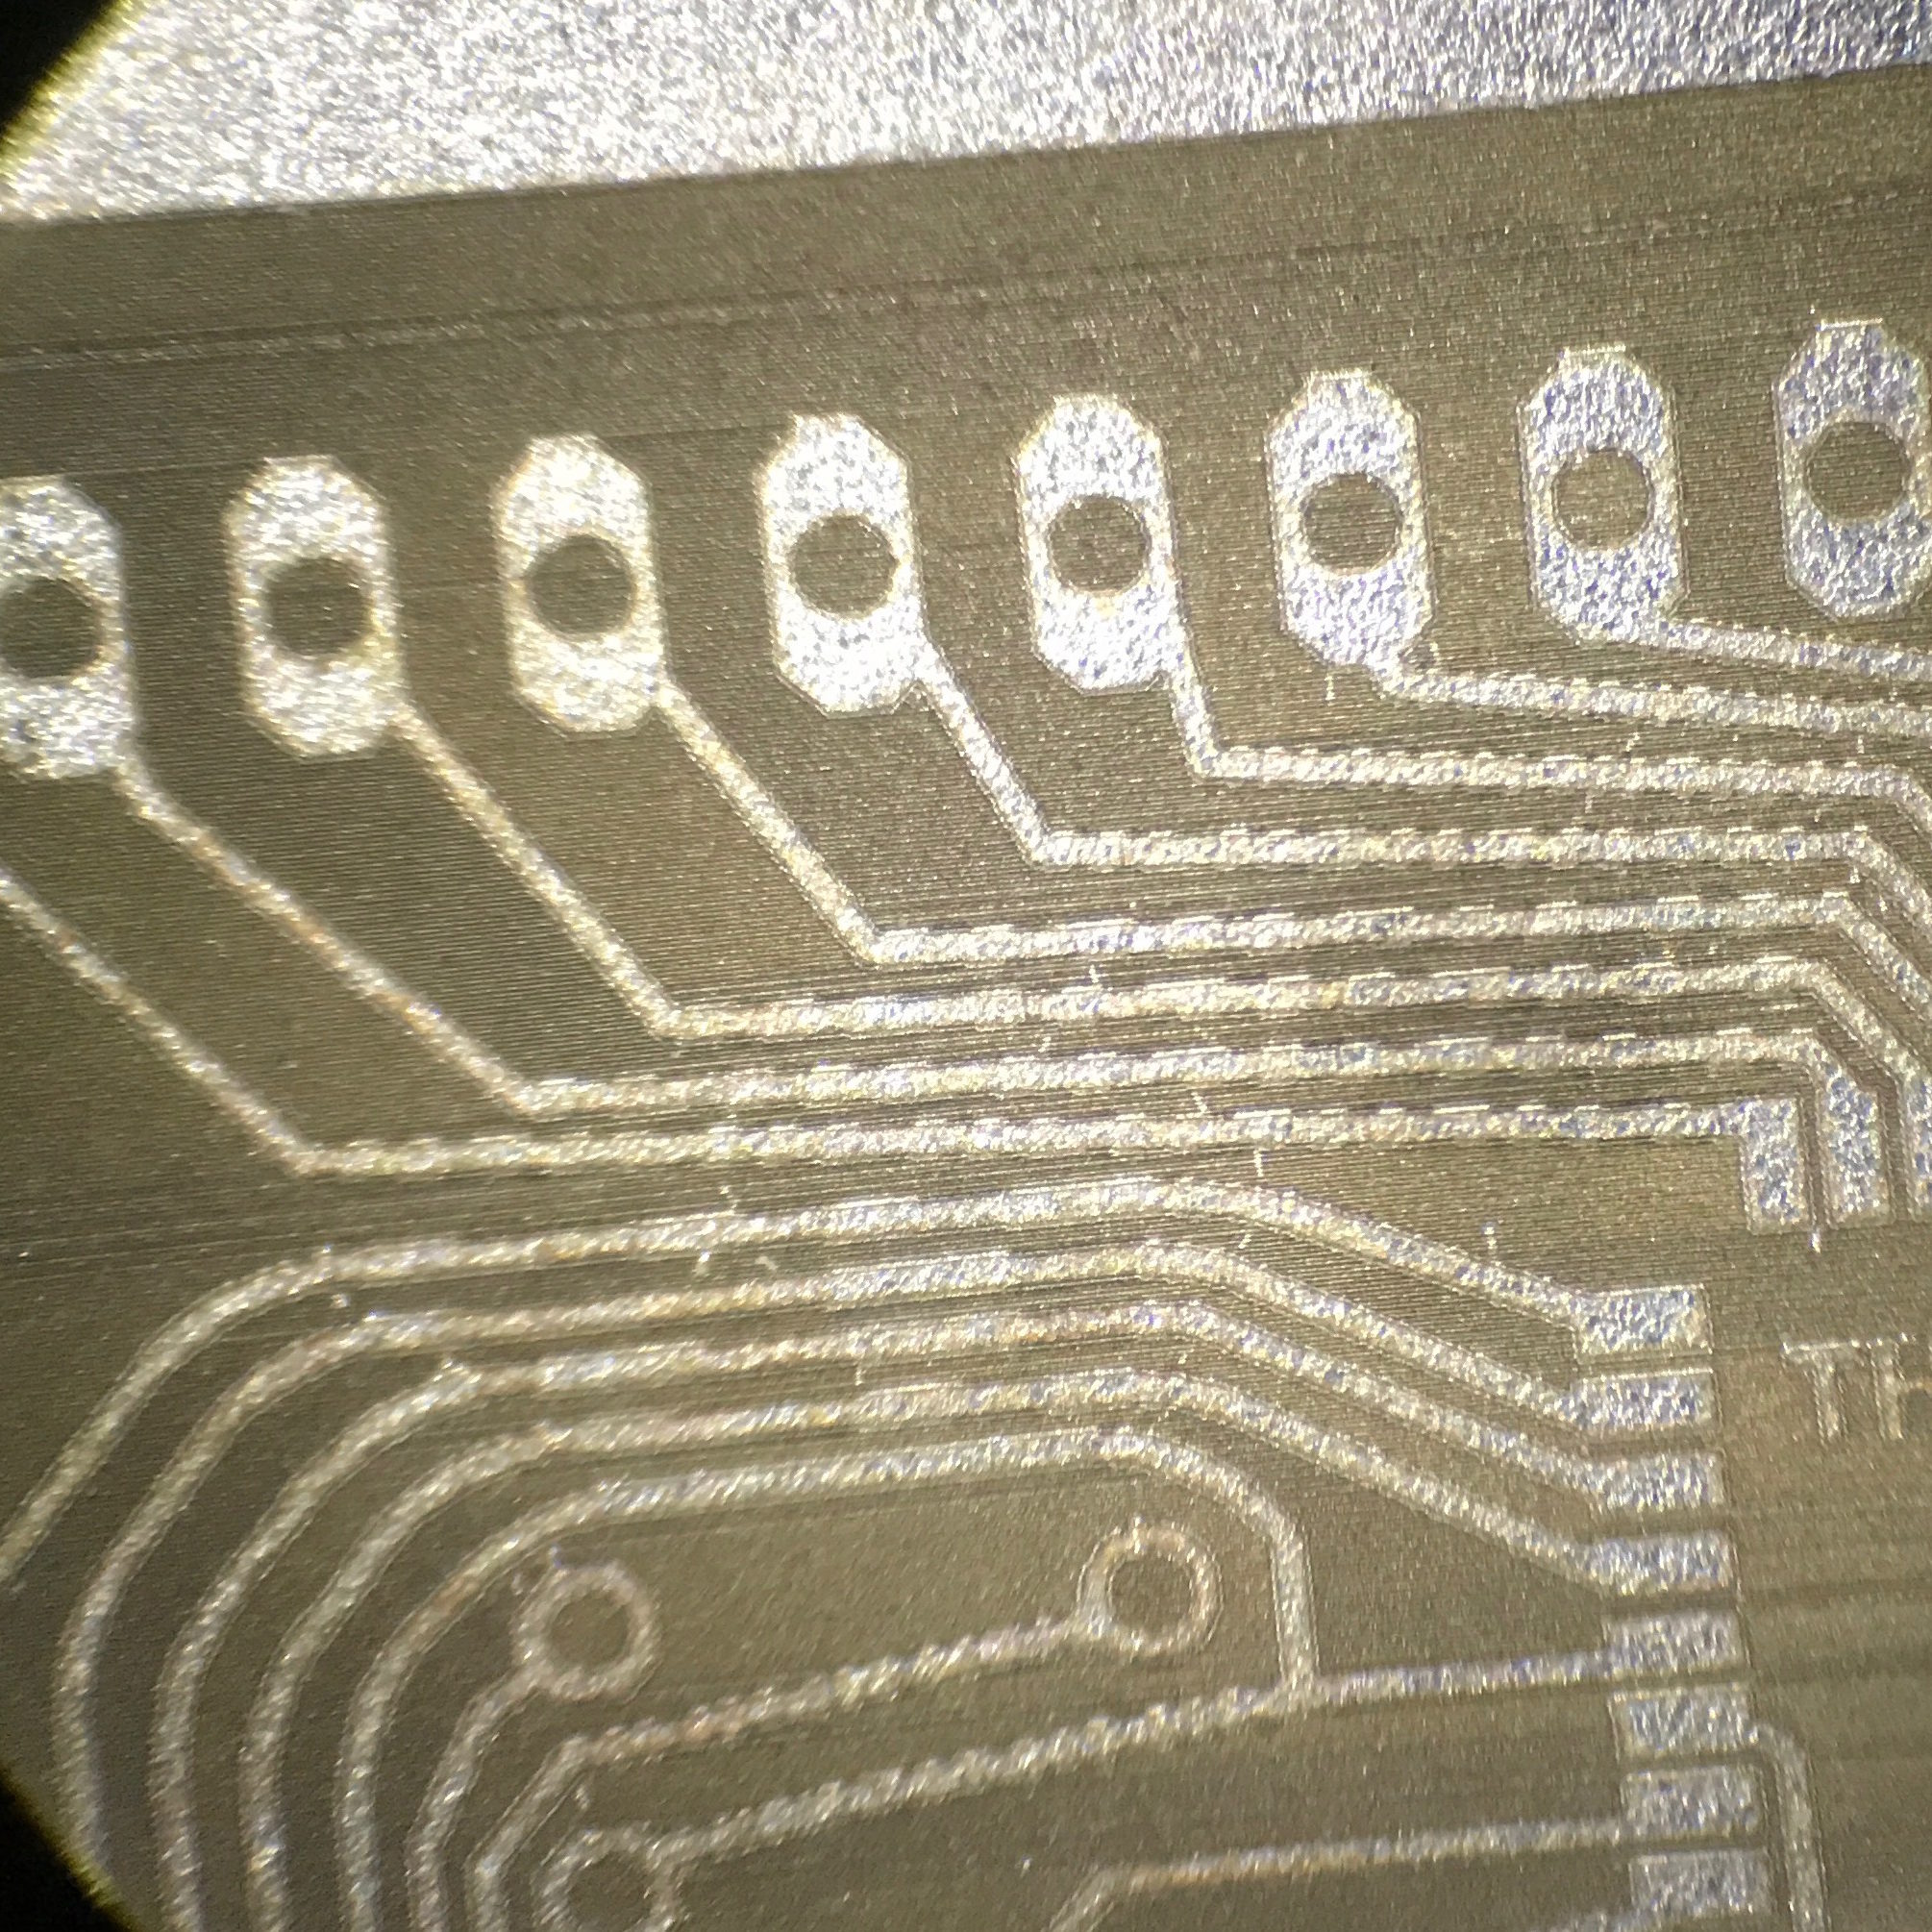 generation of electronic circuits via laser